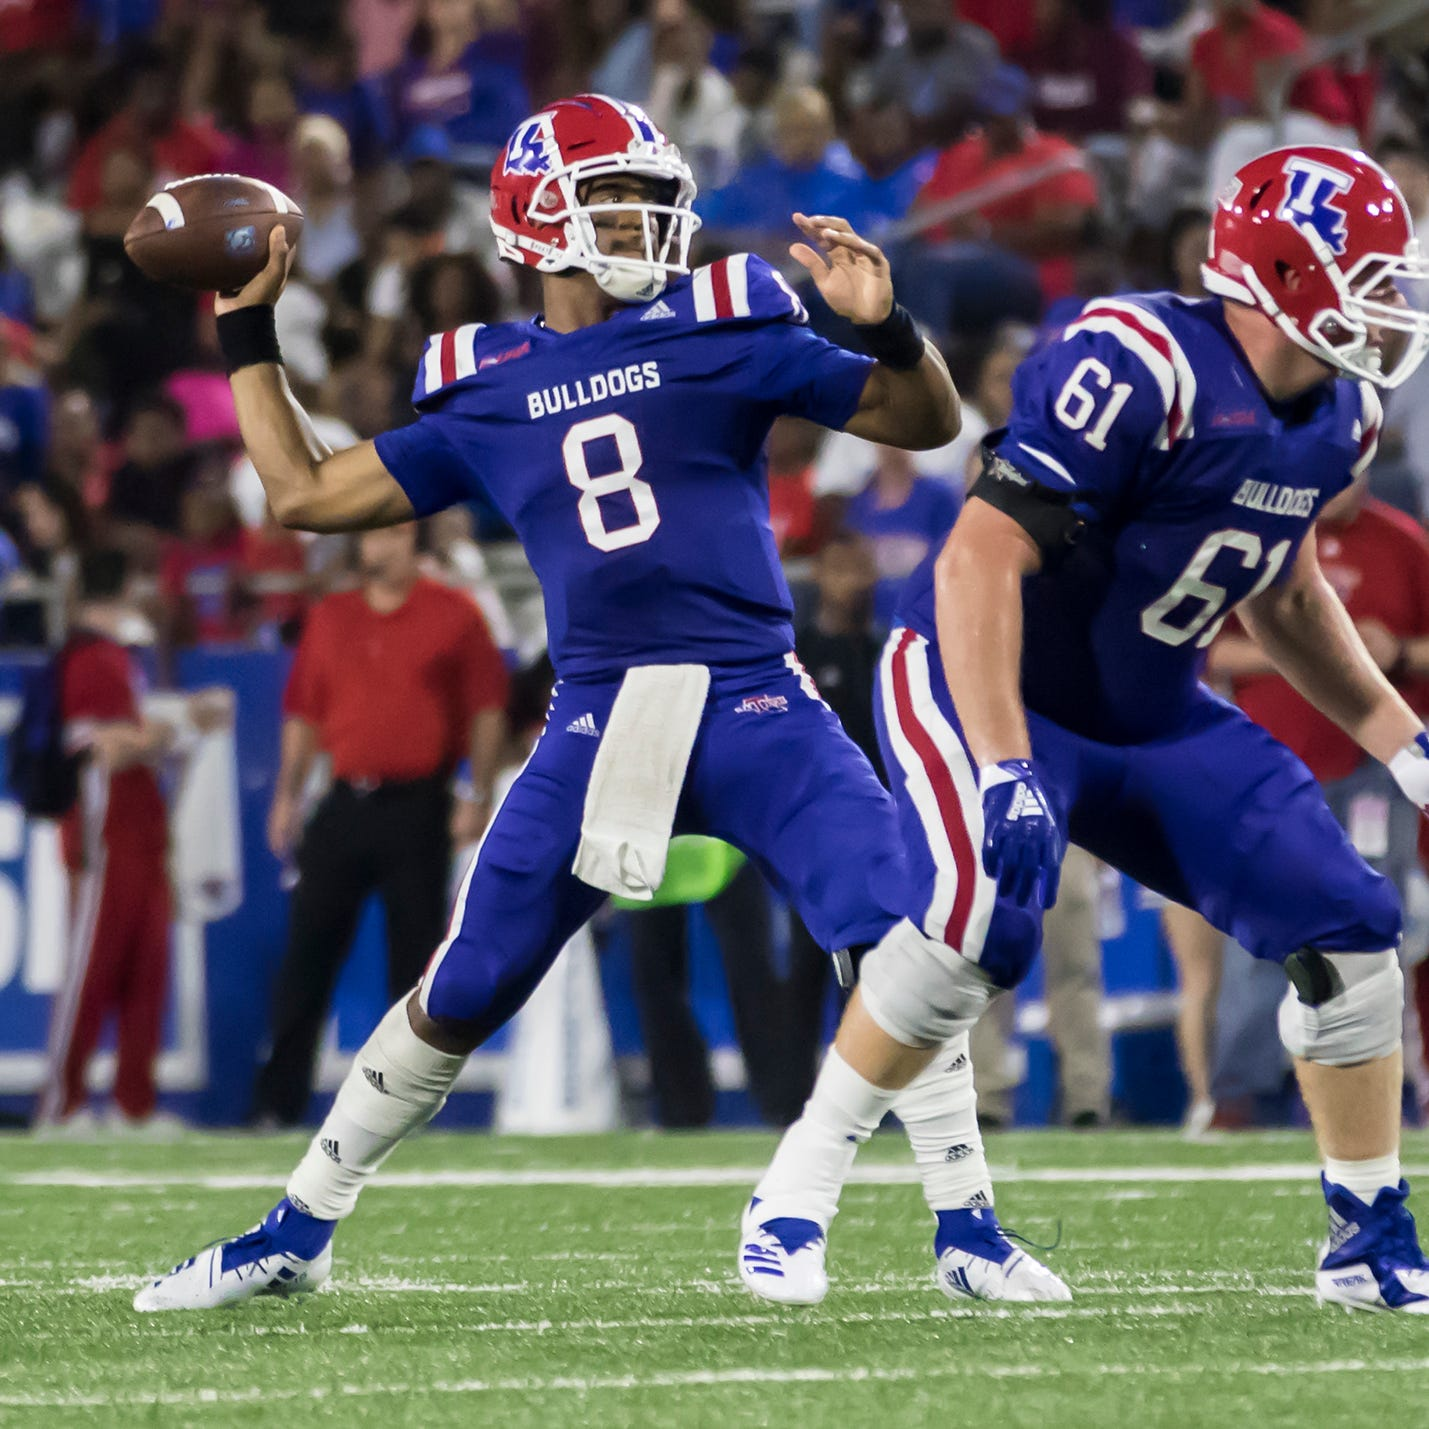 Louisiana Tech offense looks to beat LSU at its own conservative game